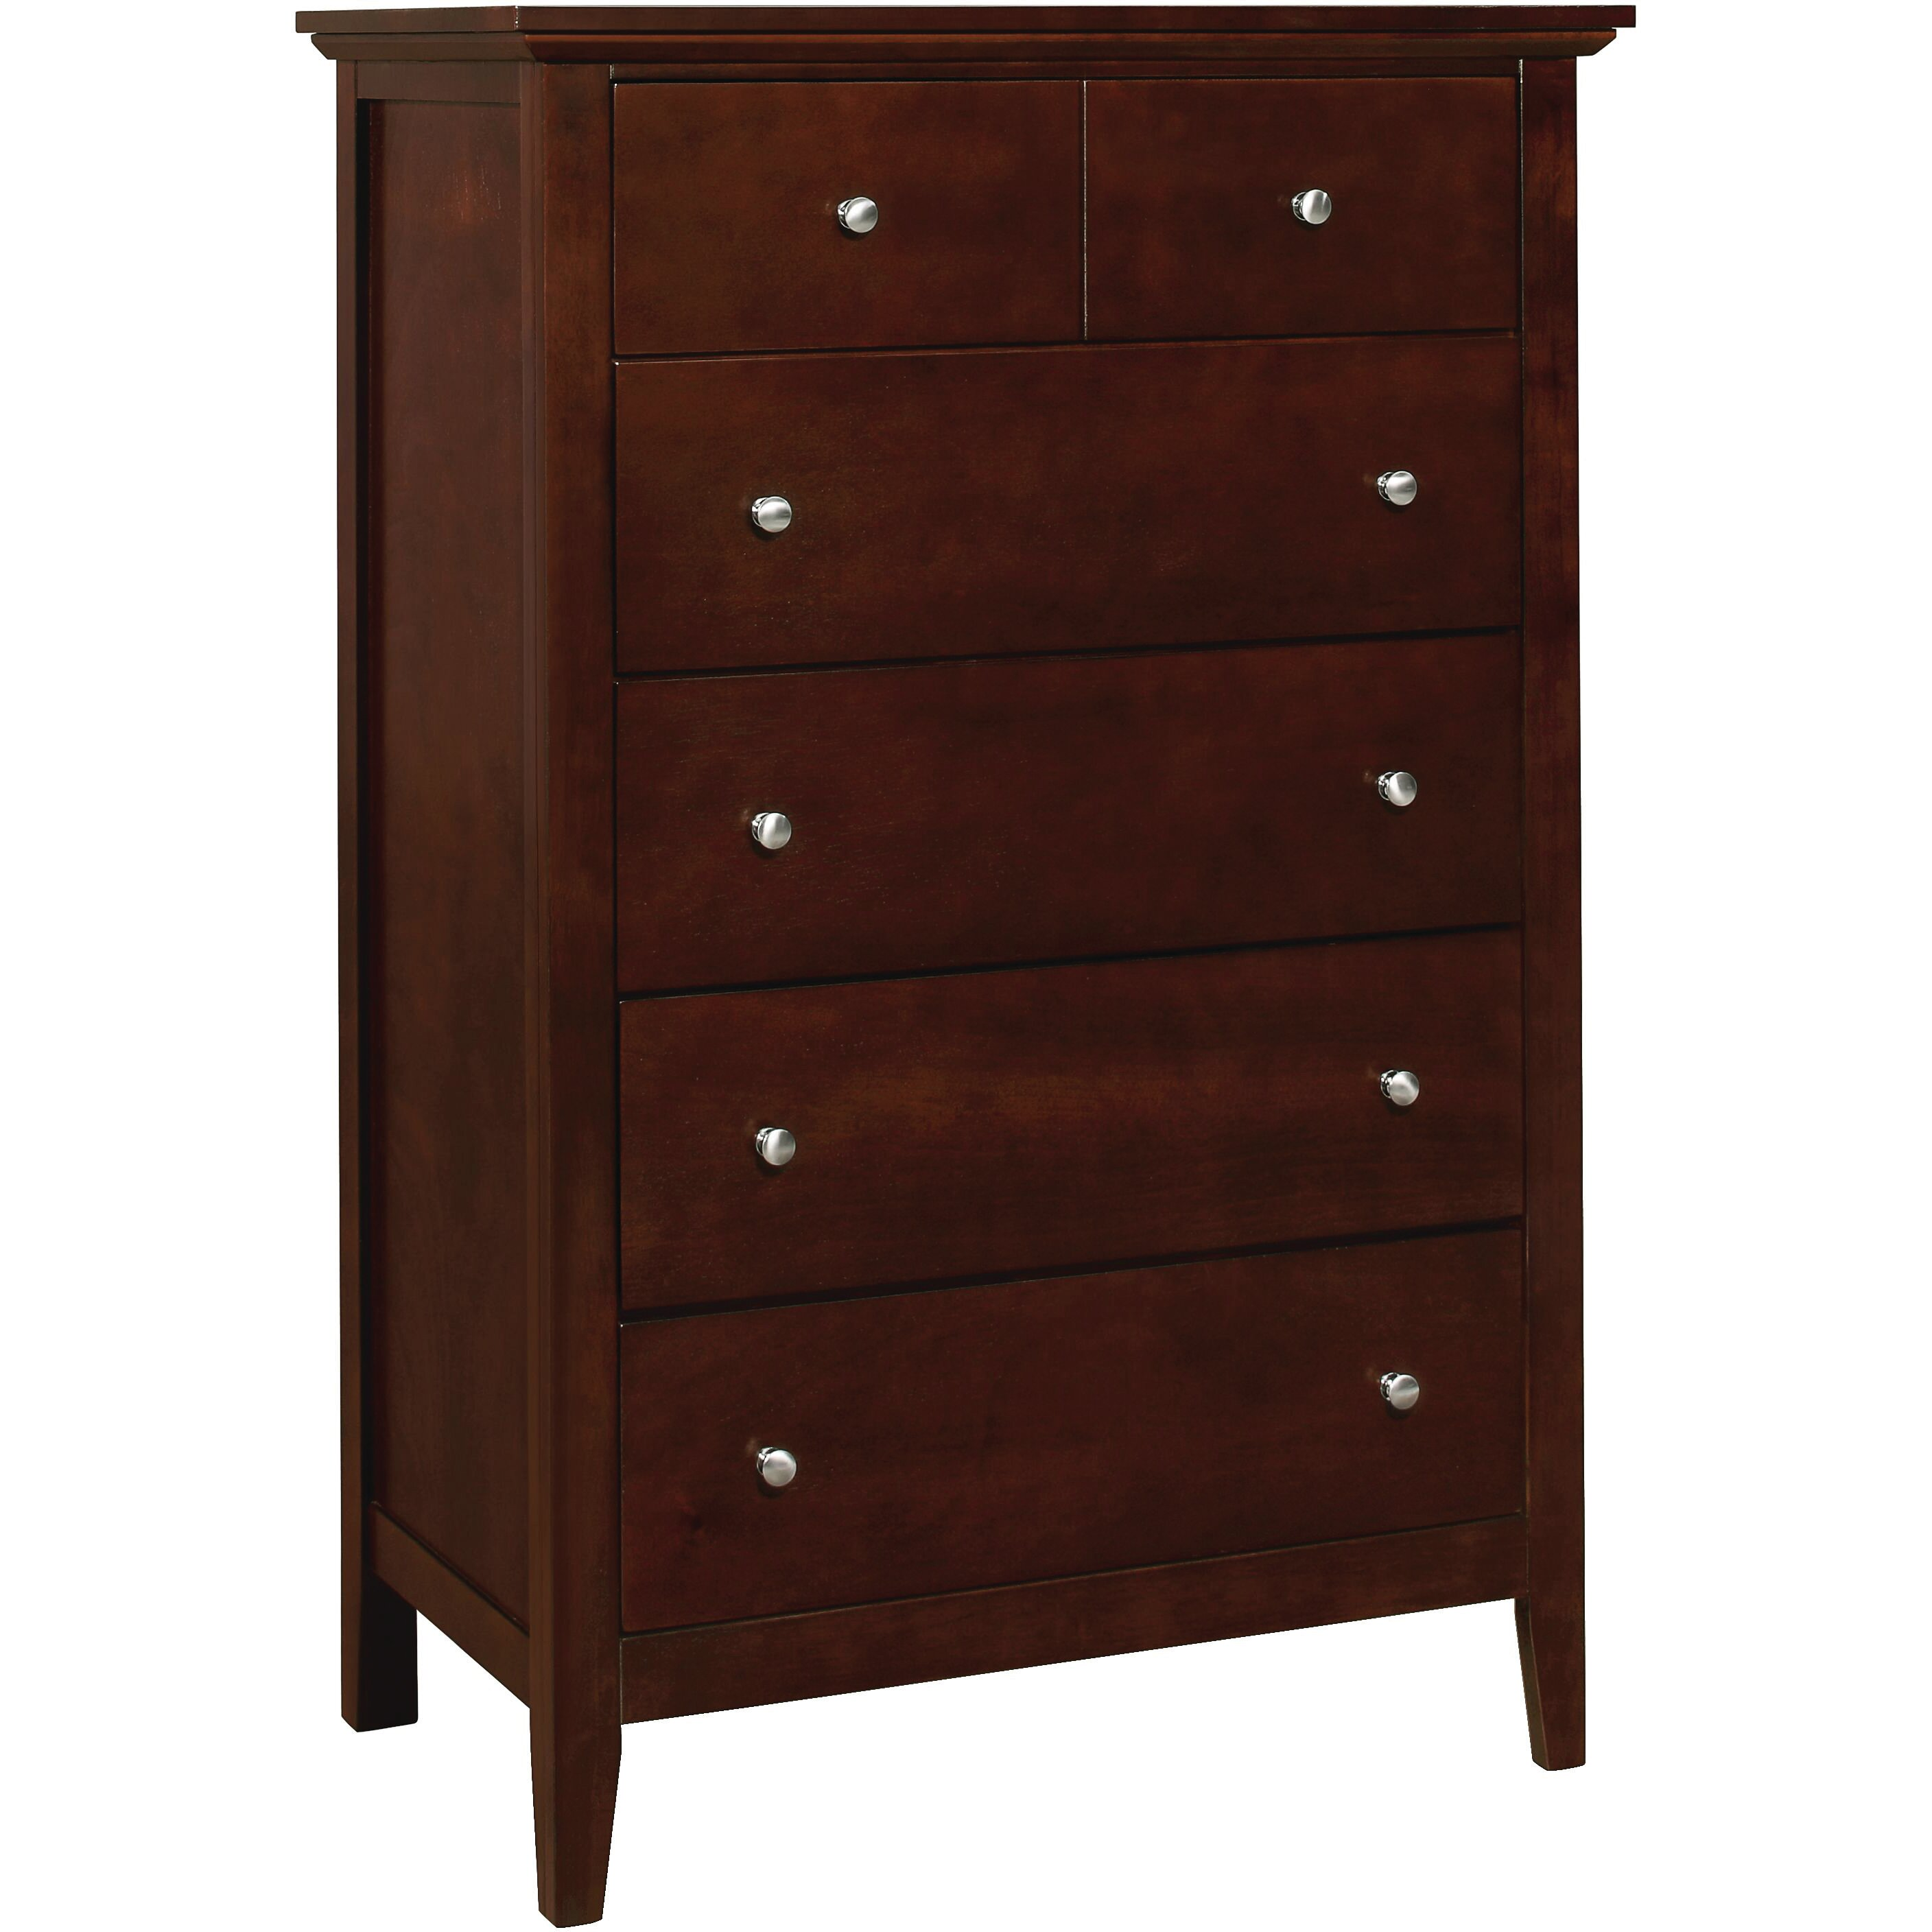 Just Cabinets Brooks 5 Drawer Chest Reviews Wayfair